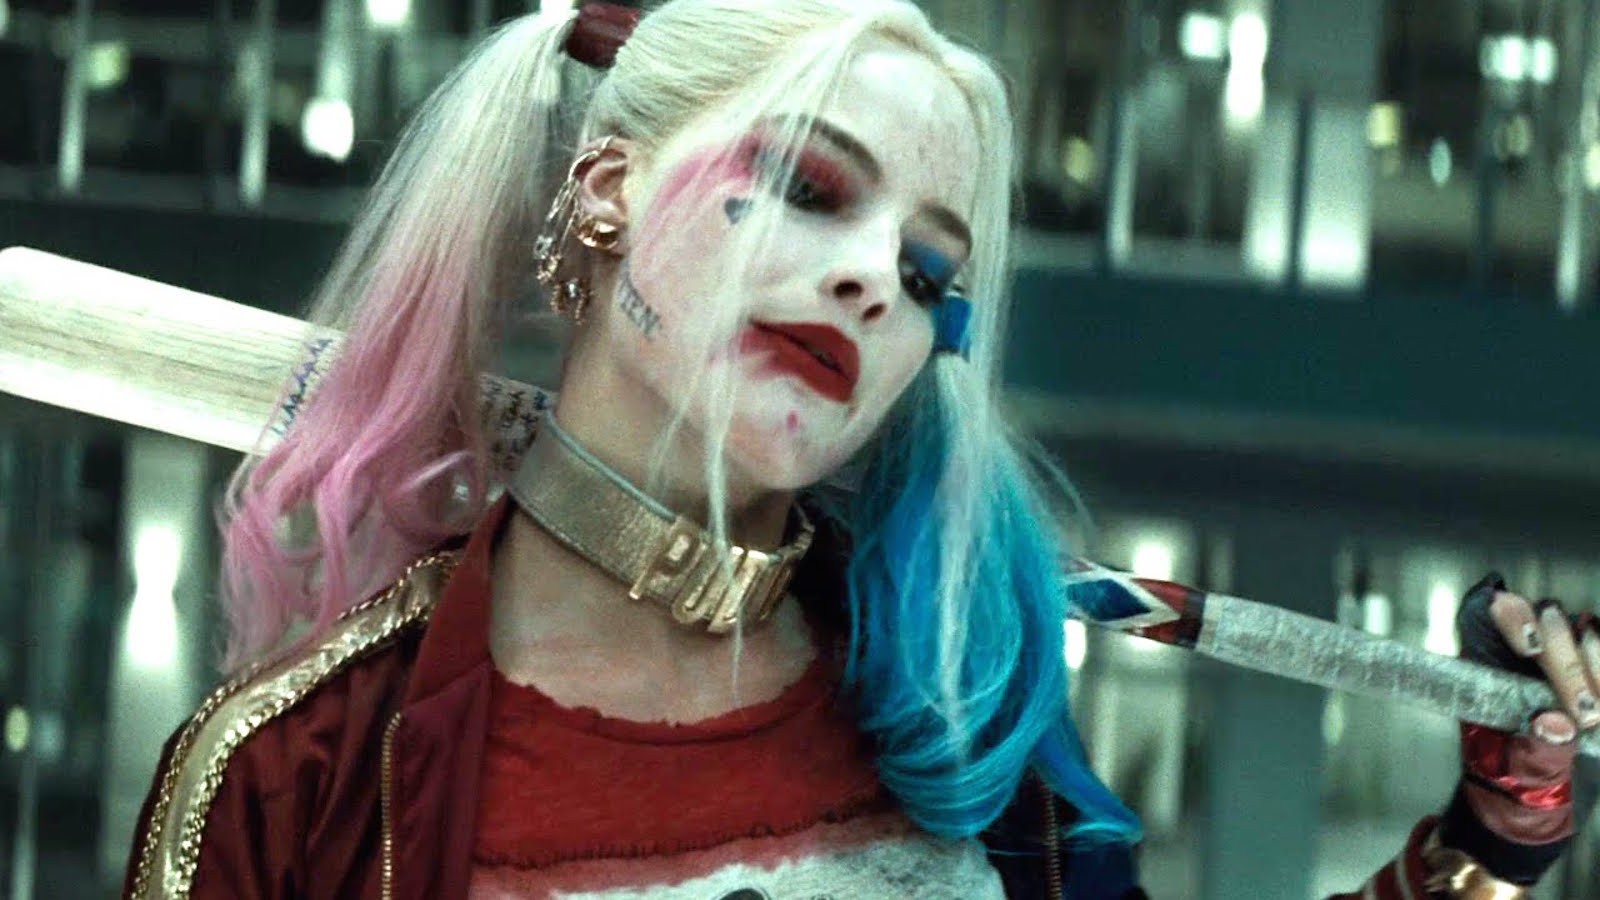 Harley Quinn And Suicide Squad Showcase All Of Hollywood S Dangerous Ideas About Mental Illness Quartz